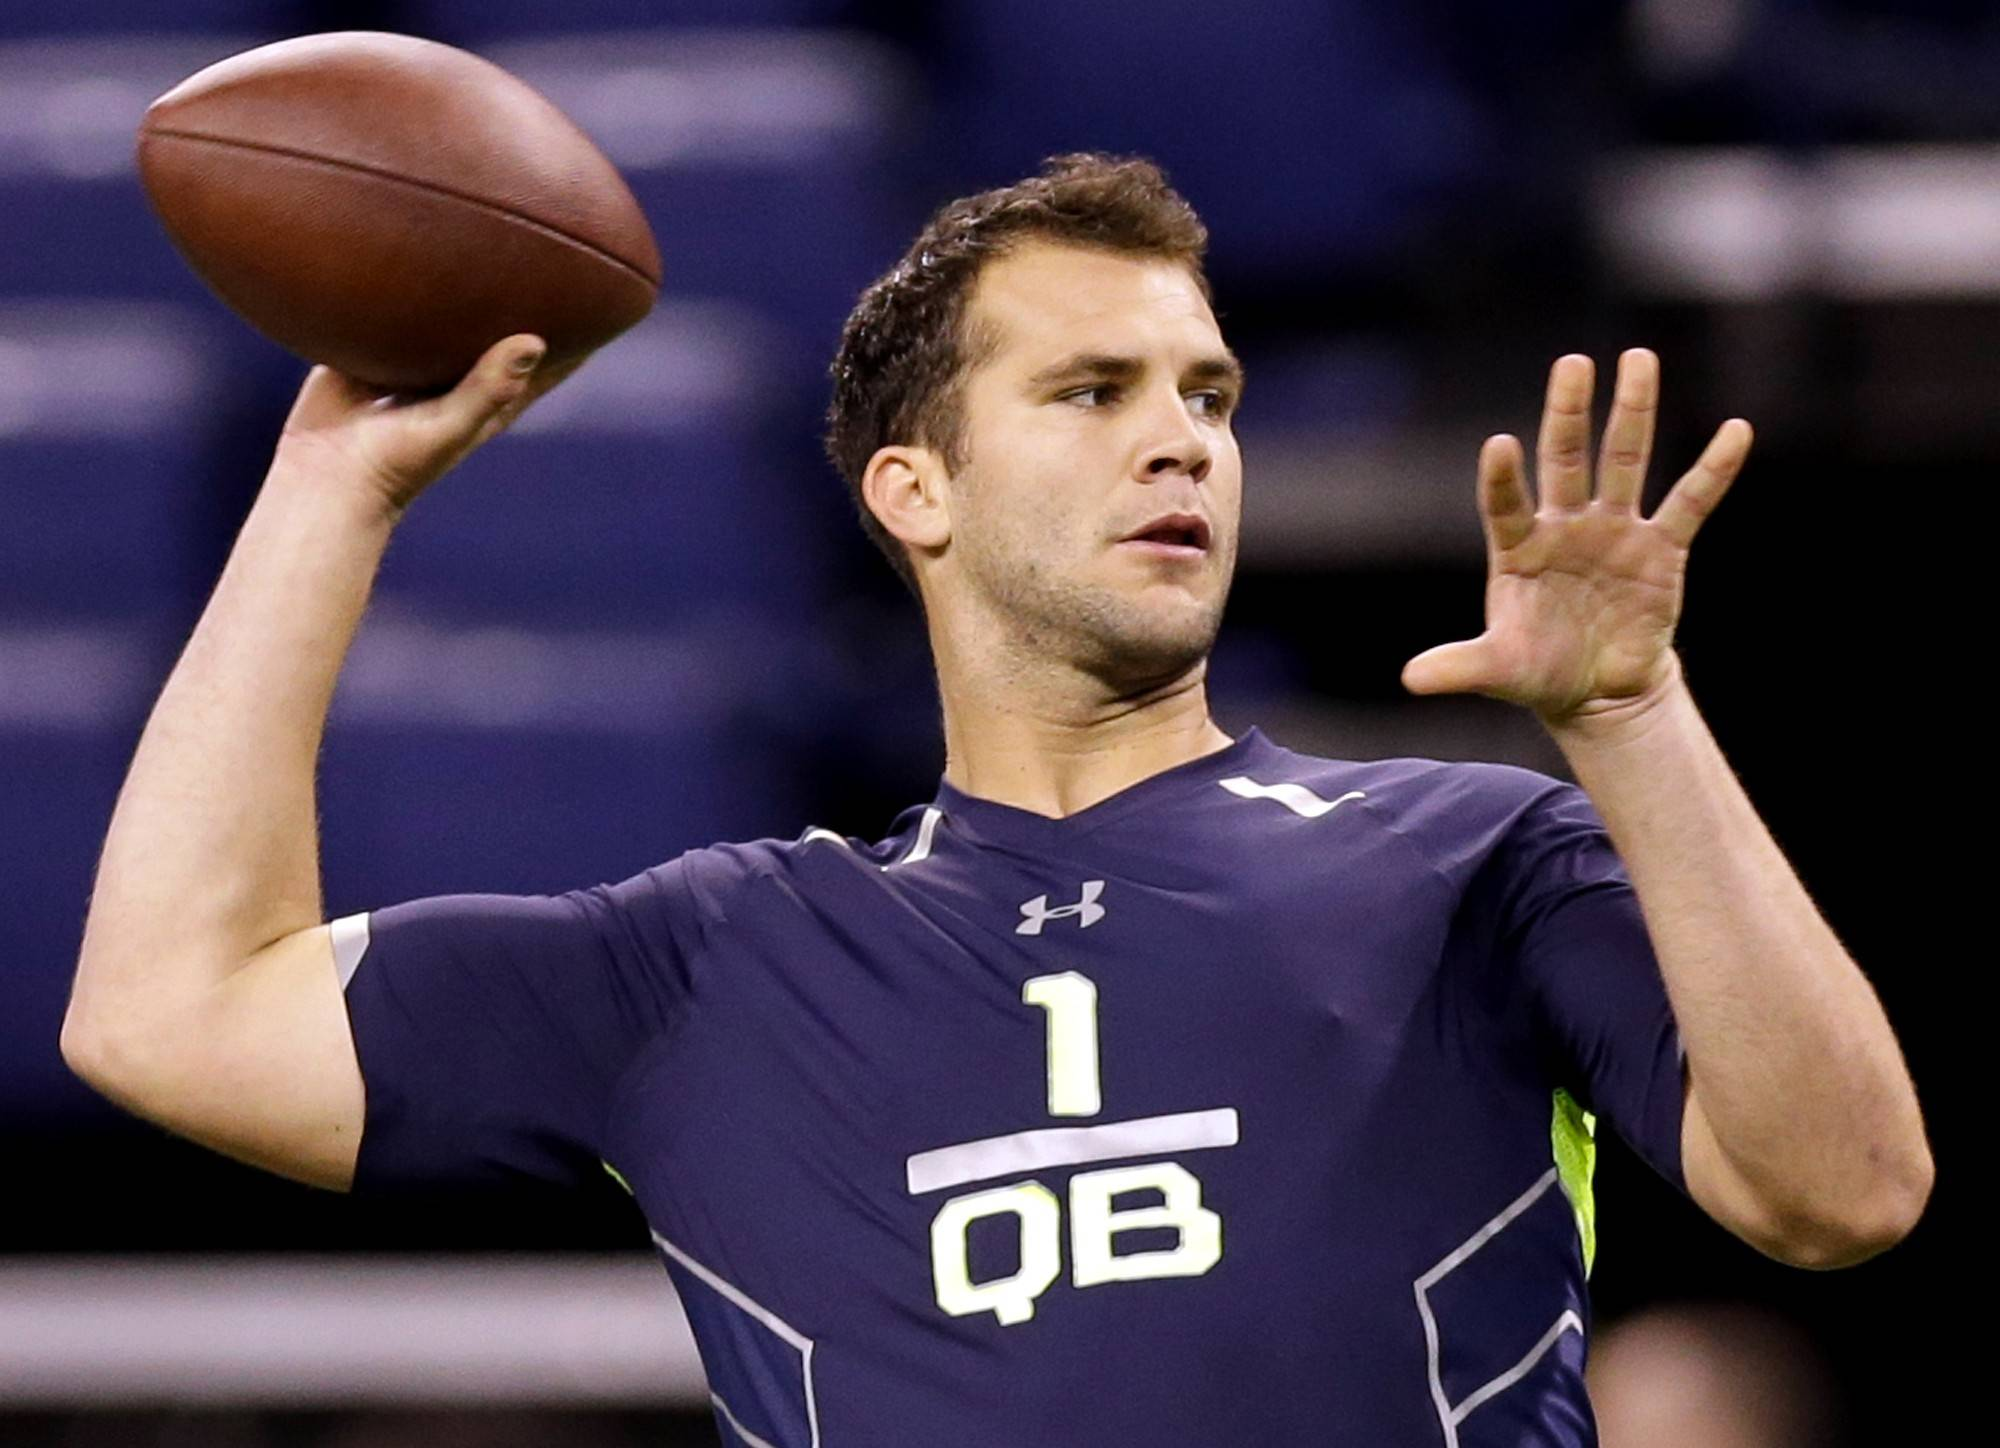 Central Florida quarterback Blake Bortles (6-5, 232). Bob LeGere's quick take: Size, mental makeup and athleticism are prototypical, but he lacks a great arm and pinpoint accuracy.